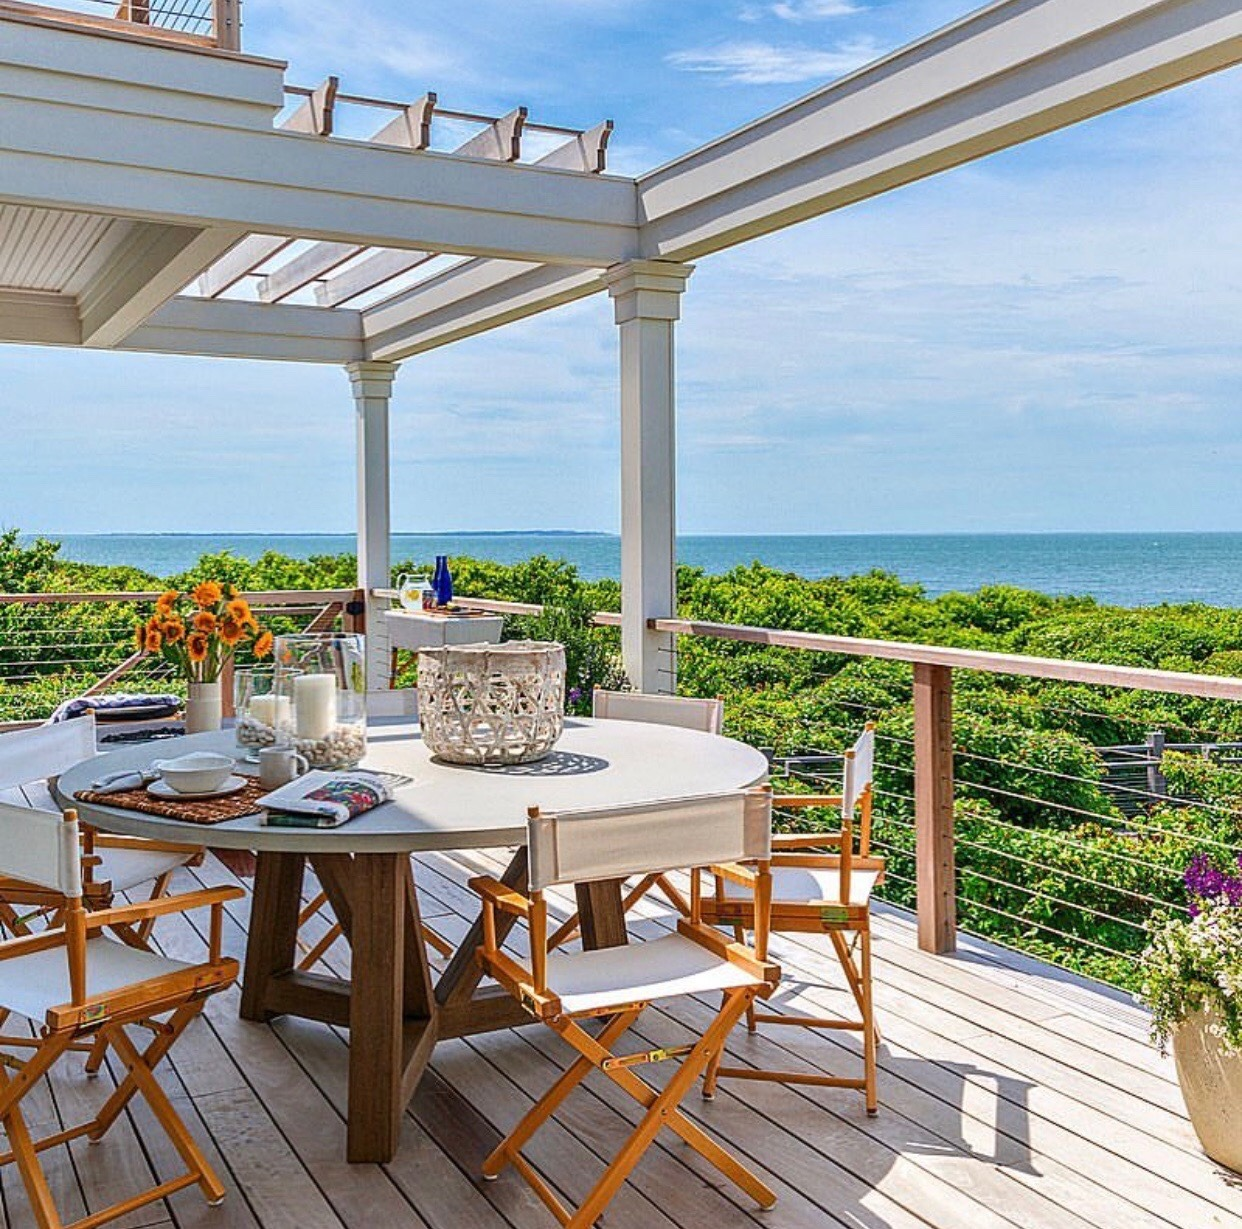 furniture, outdoor furniture, ocean views and outdoors